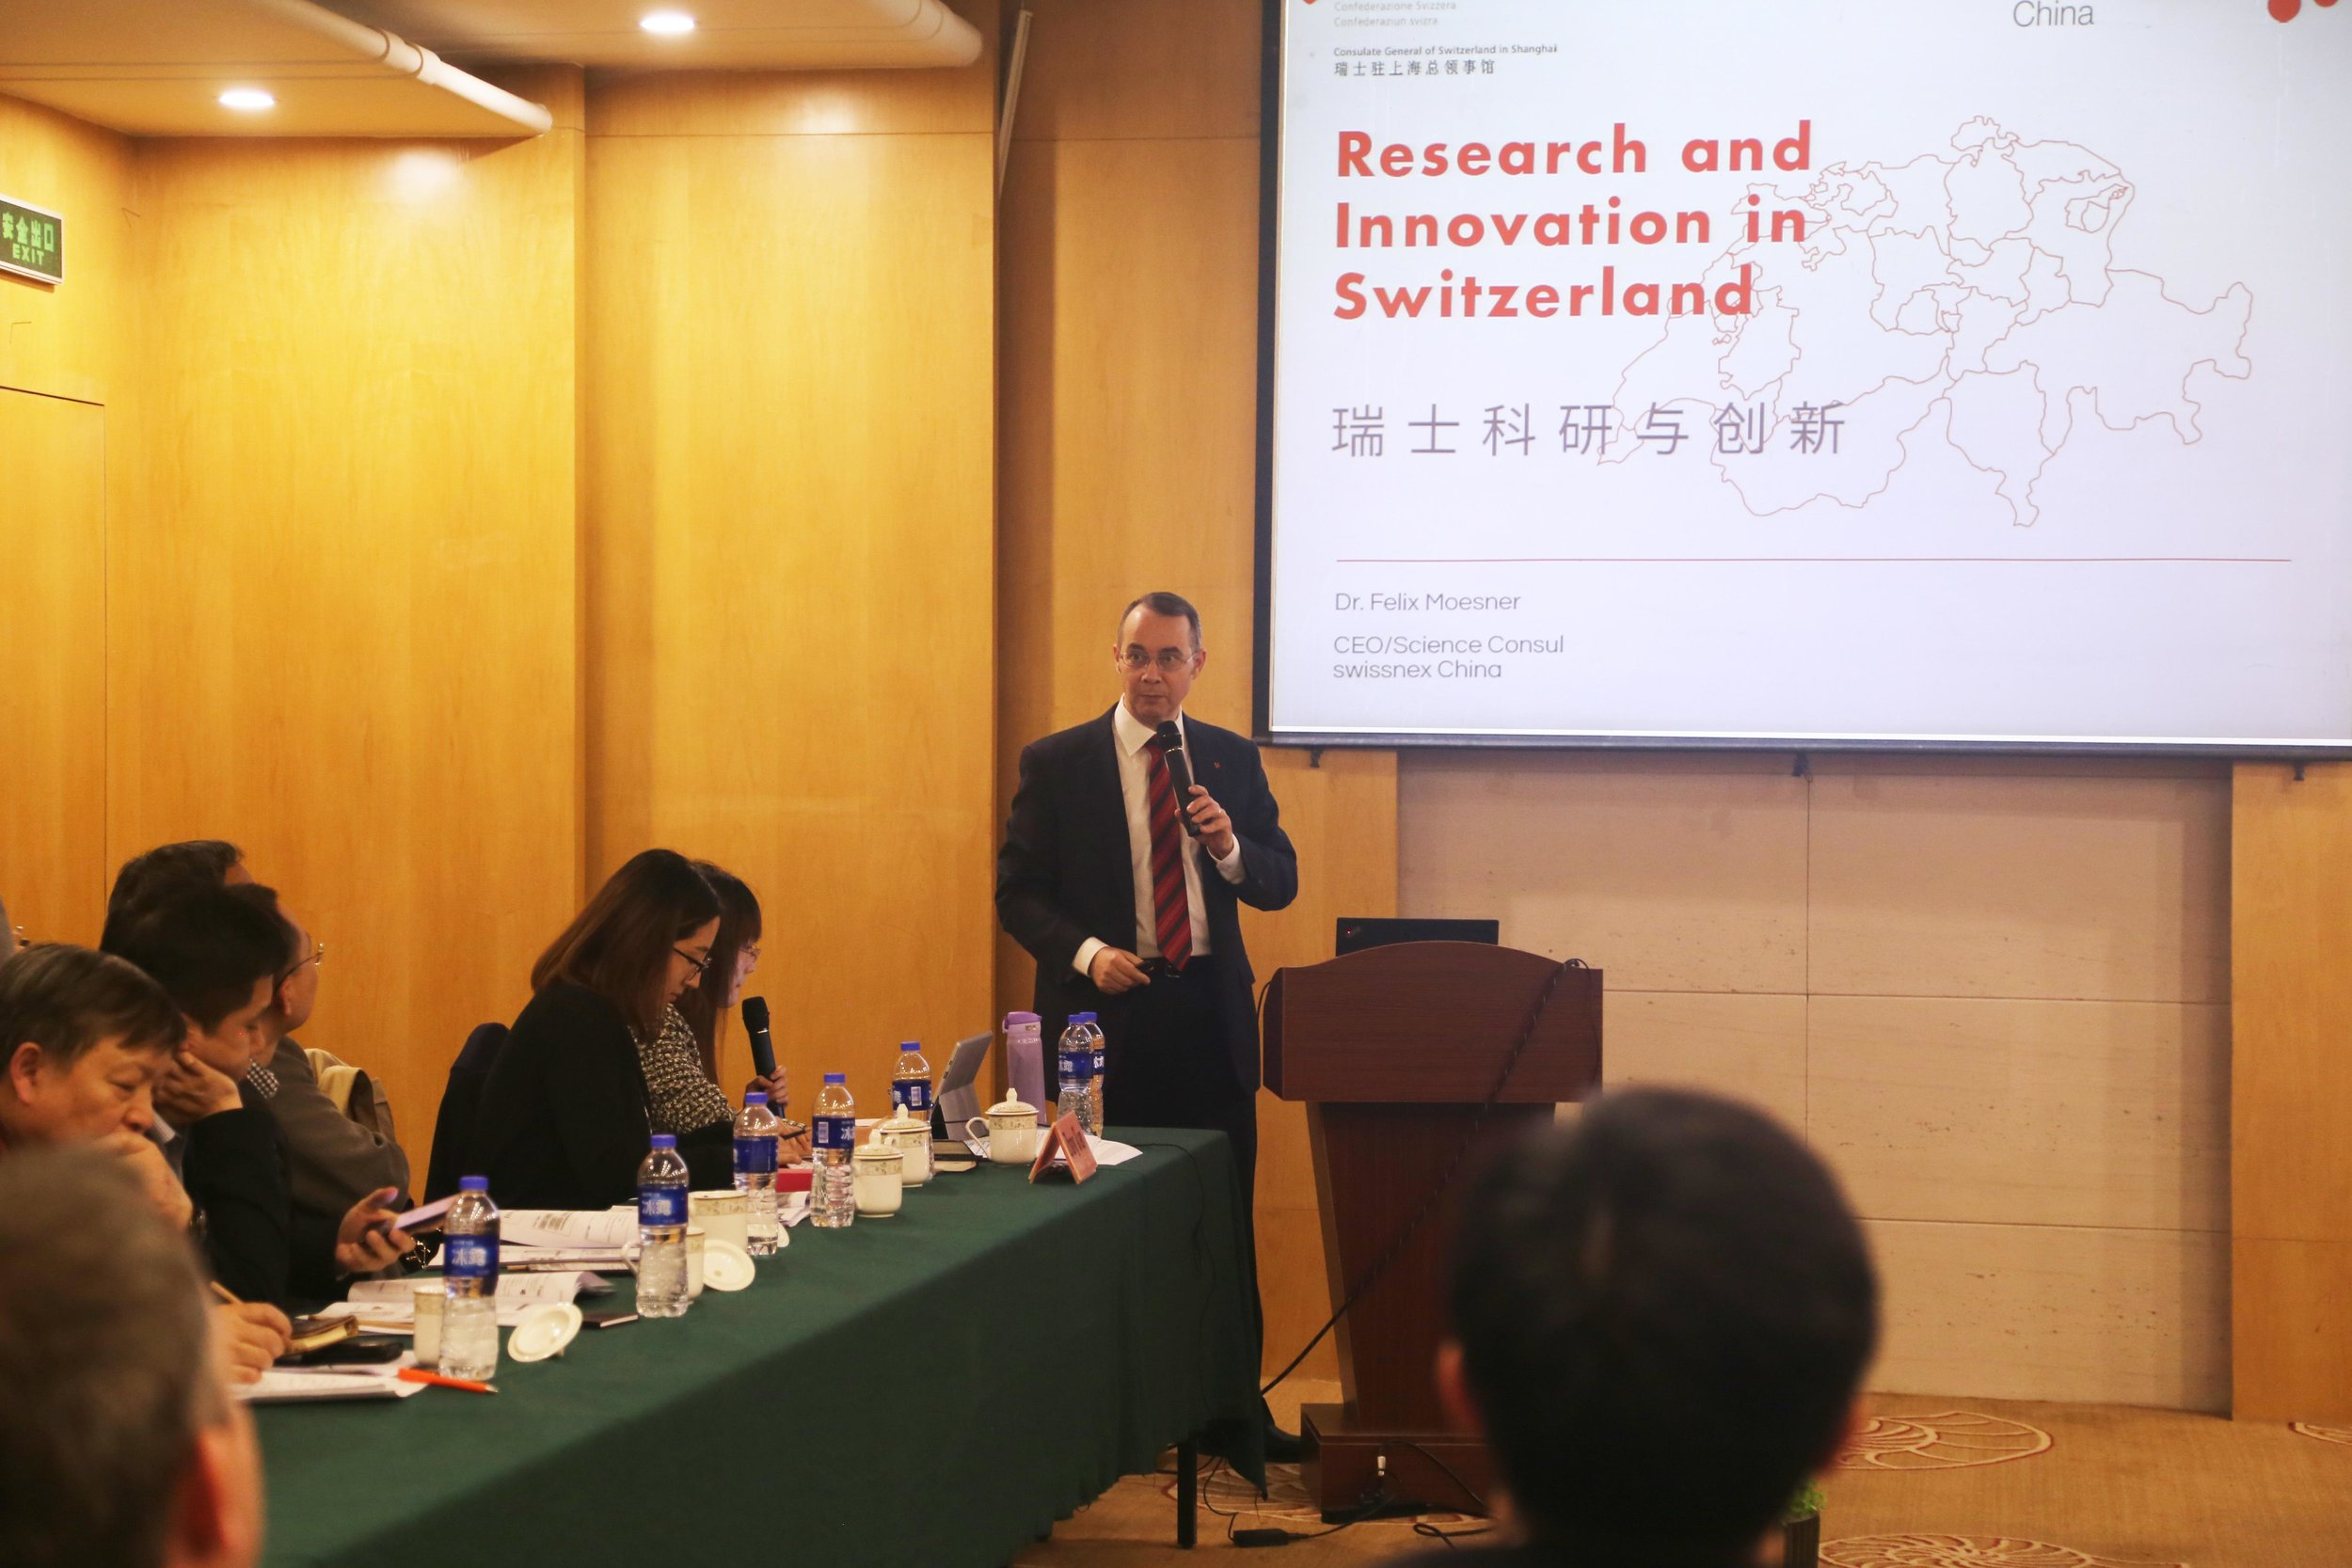 Our CEO Dr. Felix Moesner presenting Swiss innovation during the seminar.